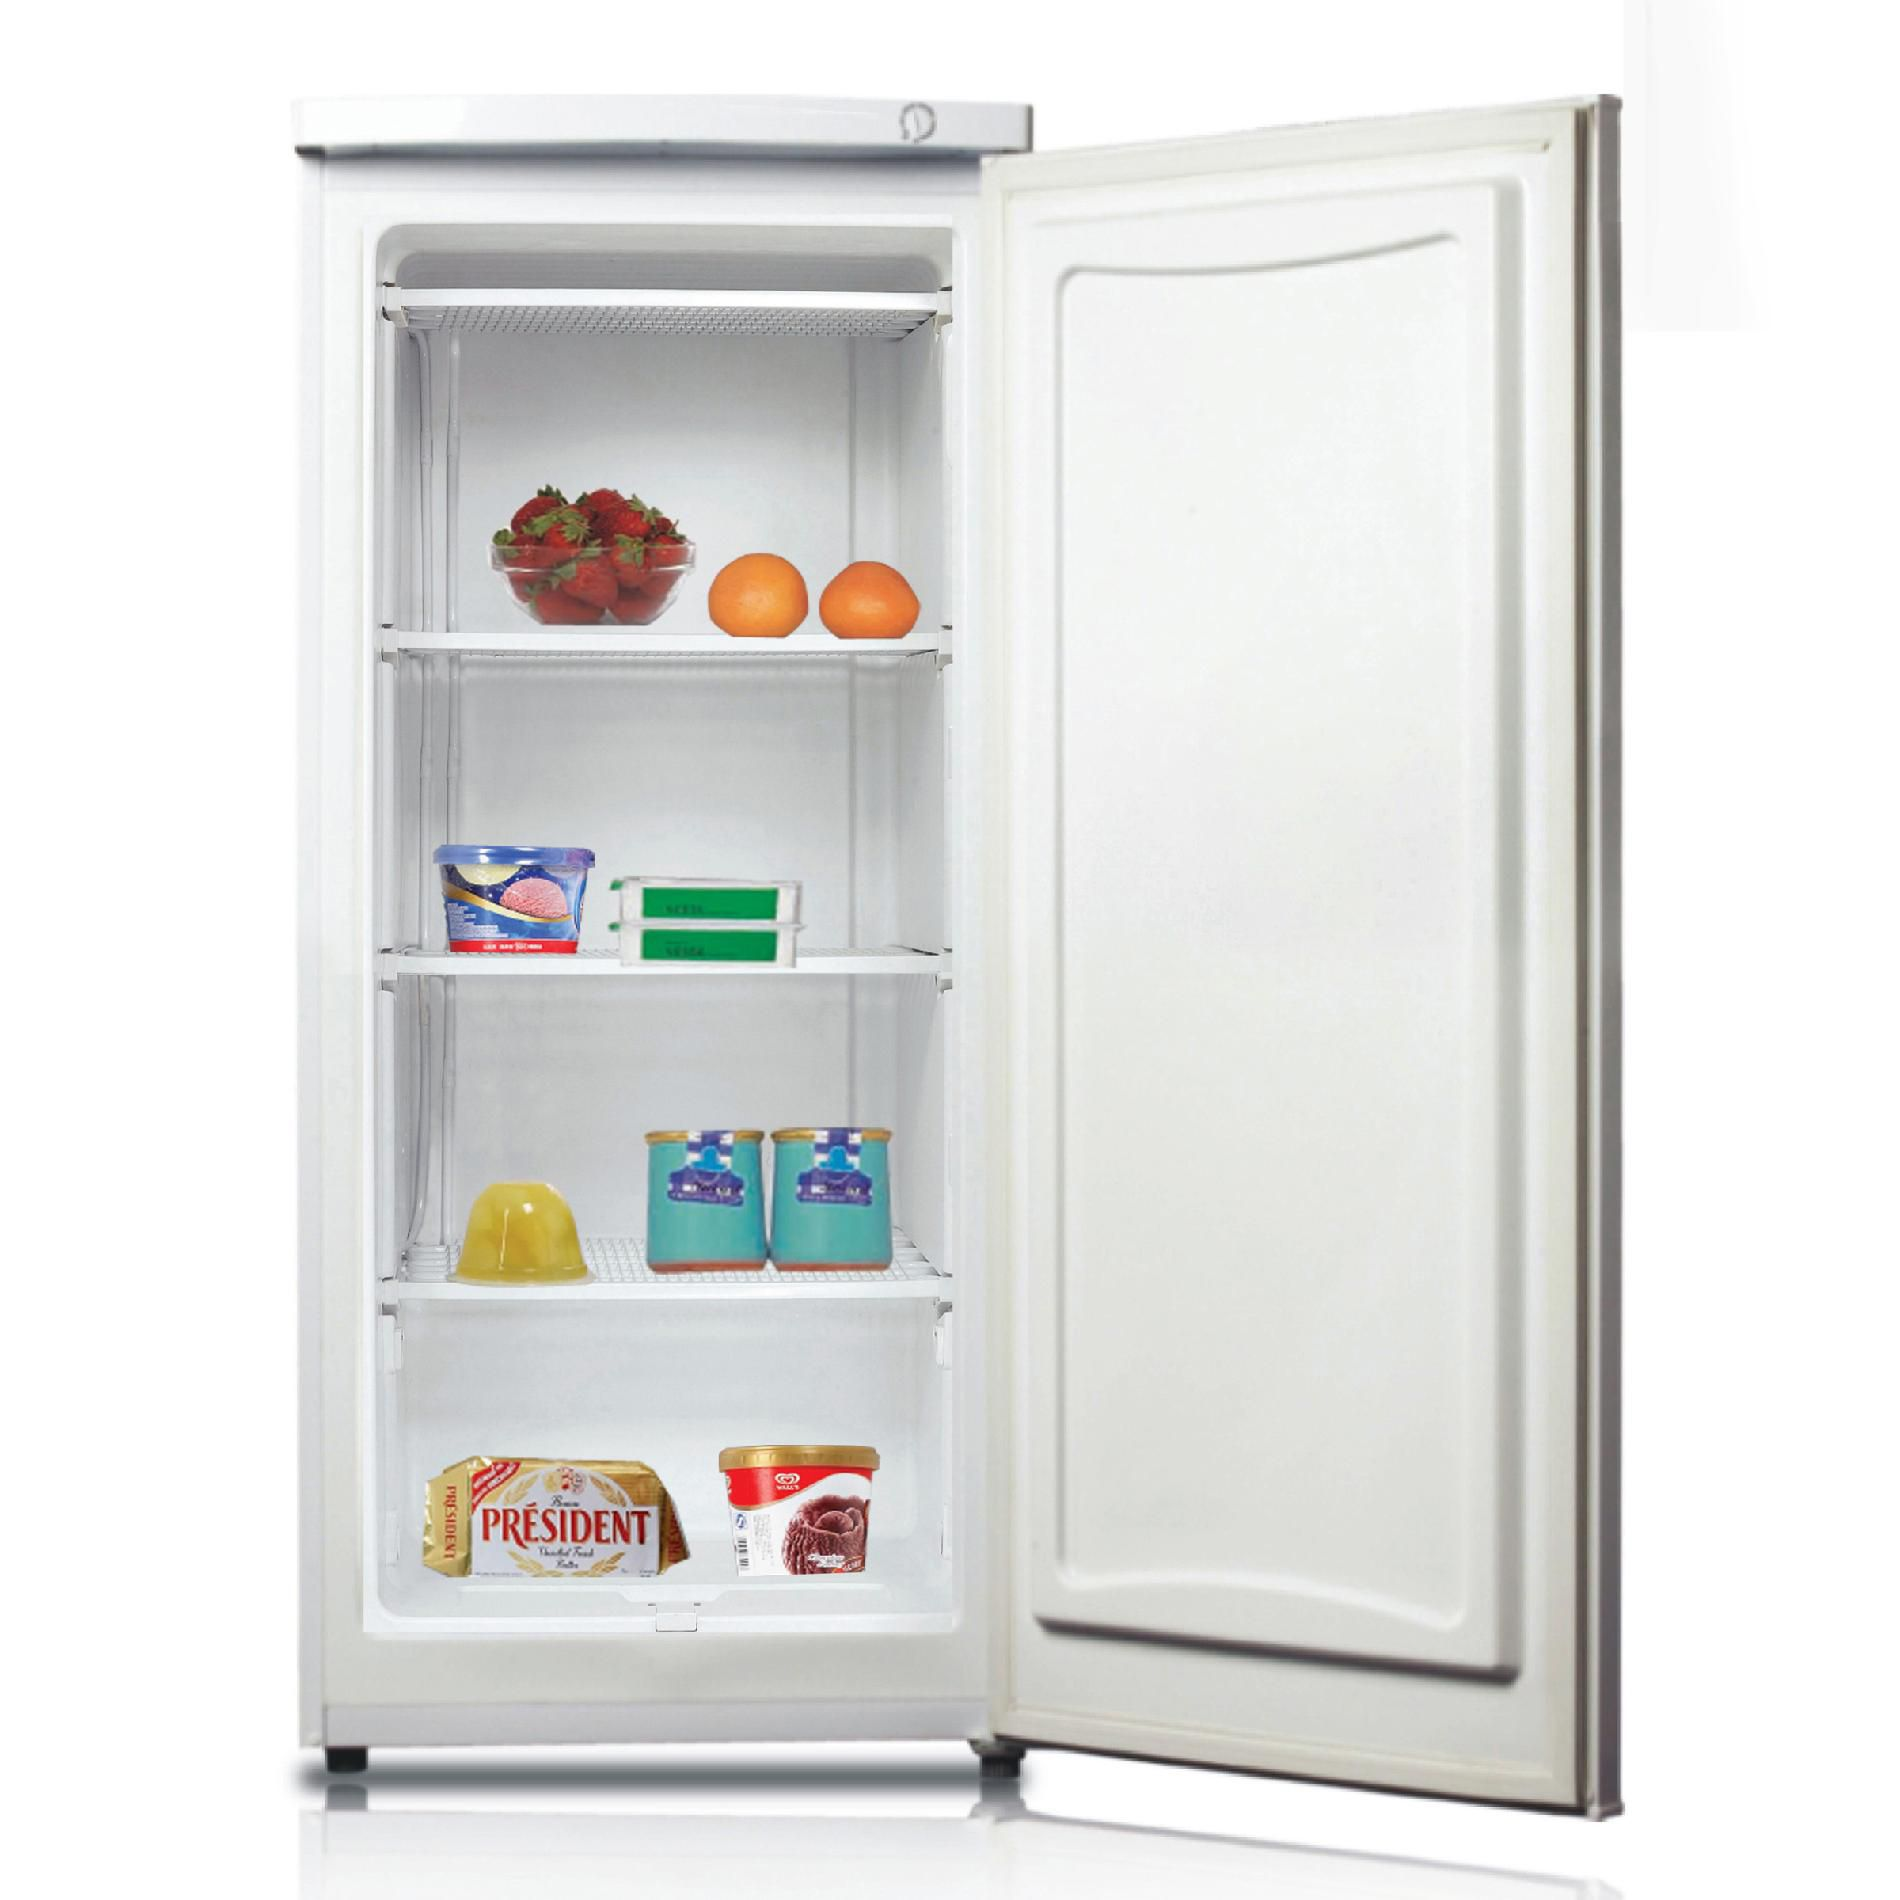 5.1 cu. ft. Upright Freezer                                                                                                      at mygofer.com